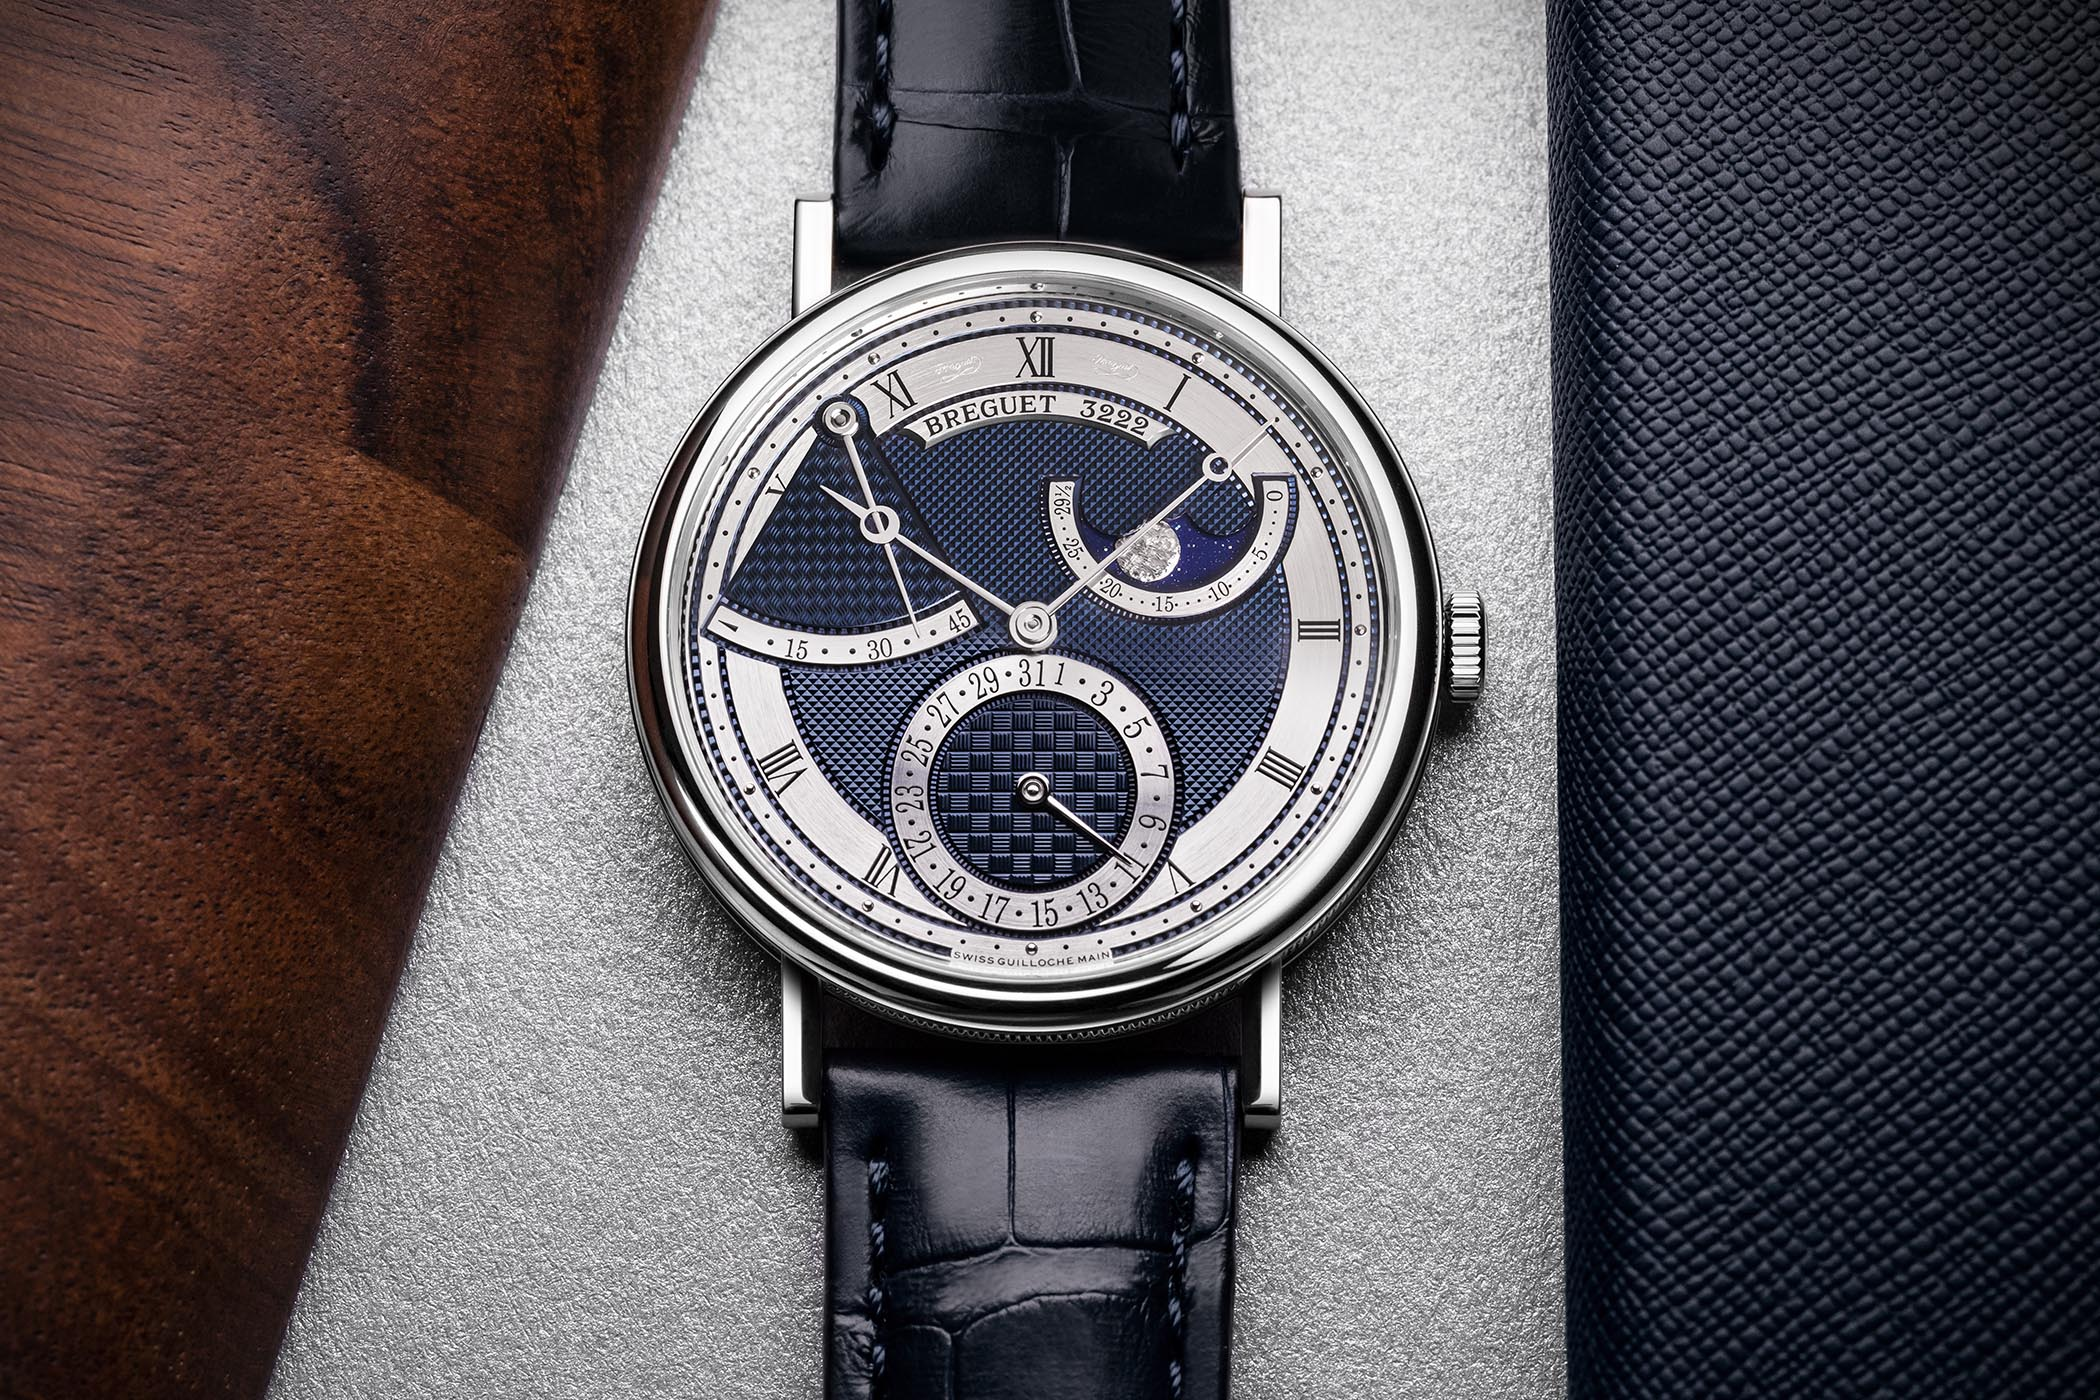 Breguet Classique 7137 Moon and Power Reserve new models 2020